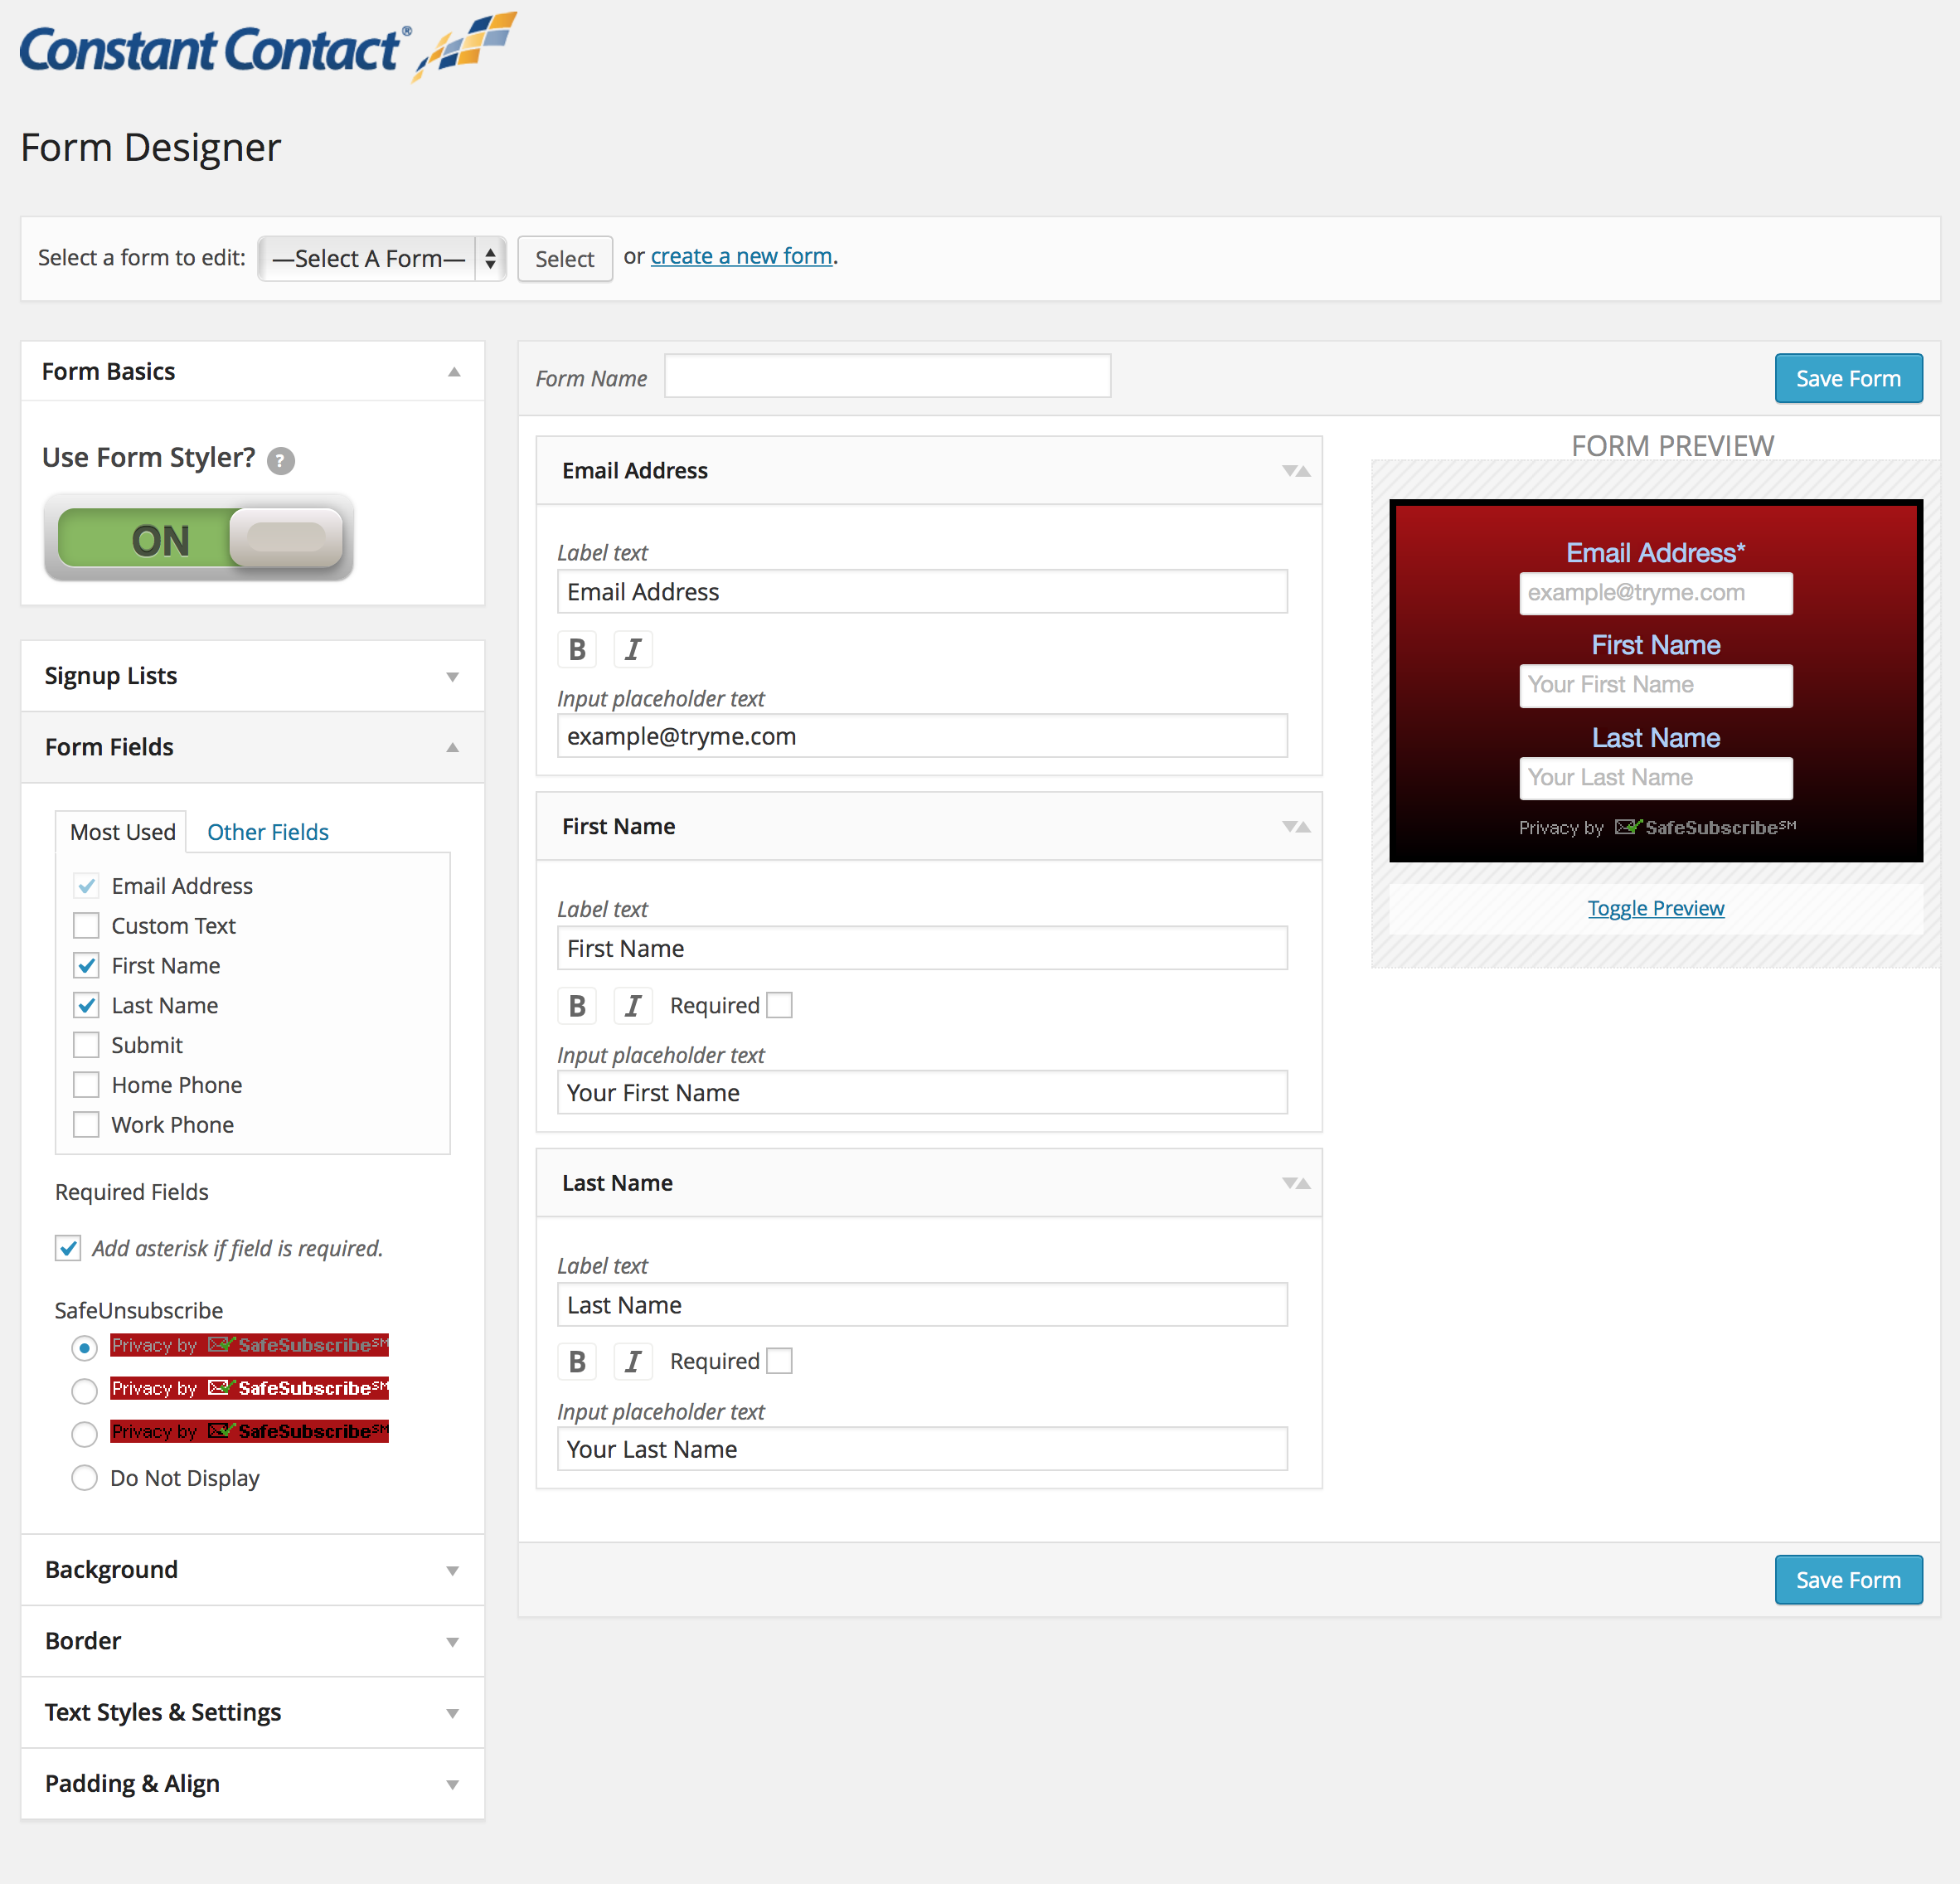 Form Designer - custom form designer built right into the plugin